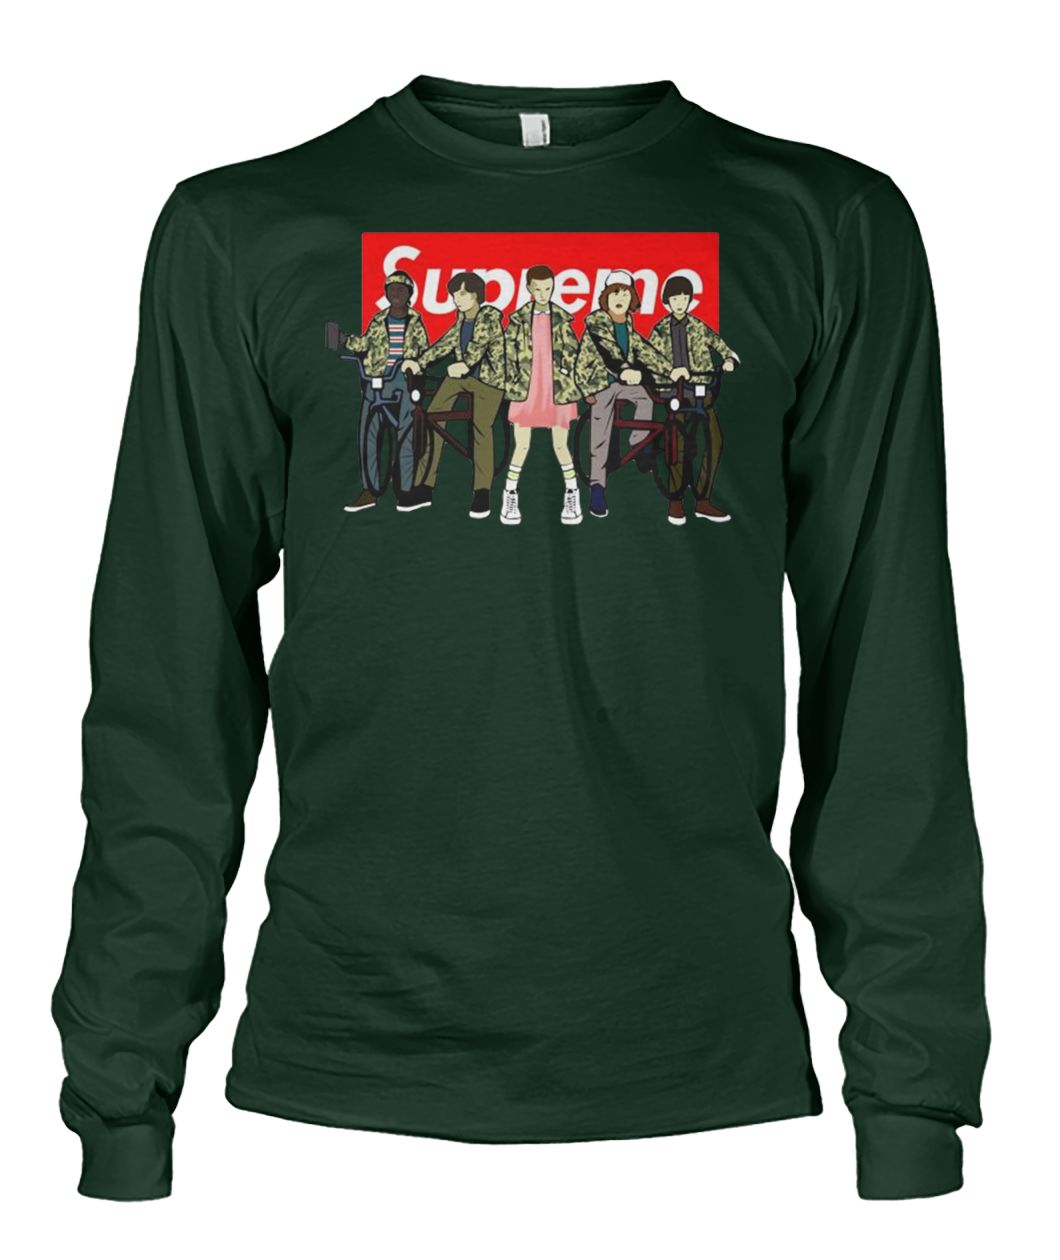 Stranger things supreme unisex long sleeve